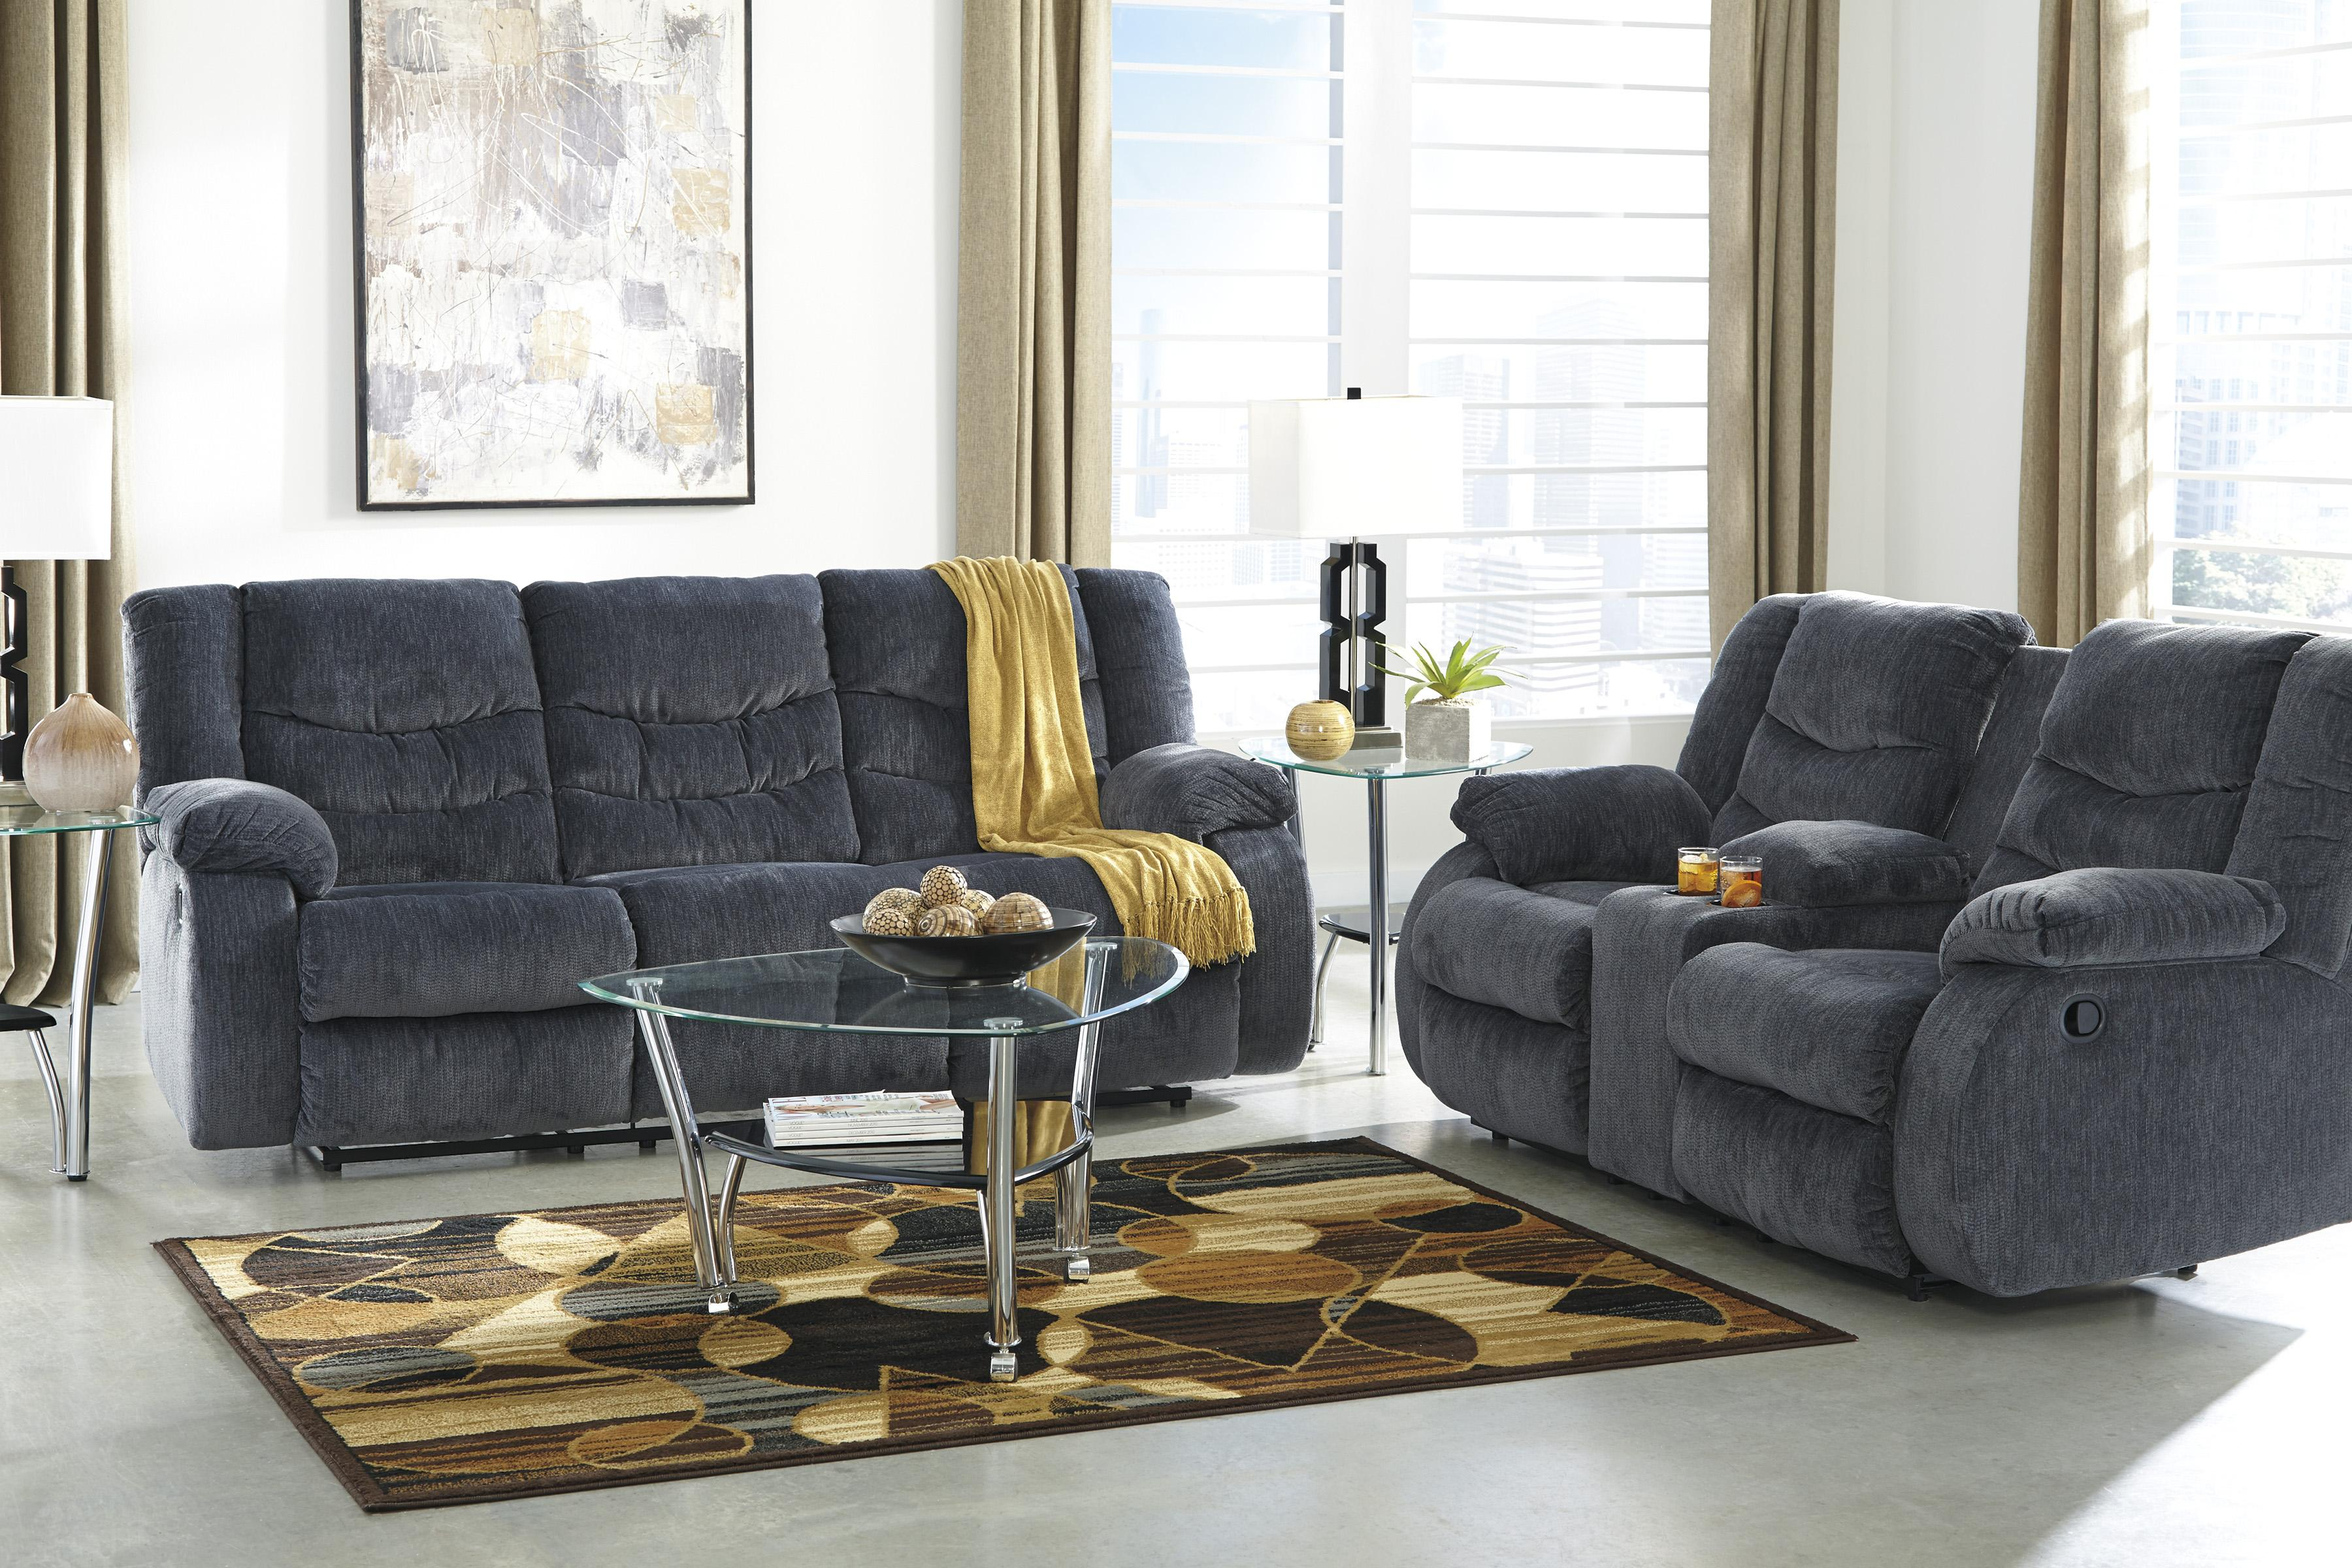 Signature Design by Ashley Garek - Blue Reclining Living Room Group - Item Number: 92001 Living Room Group 3